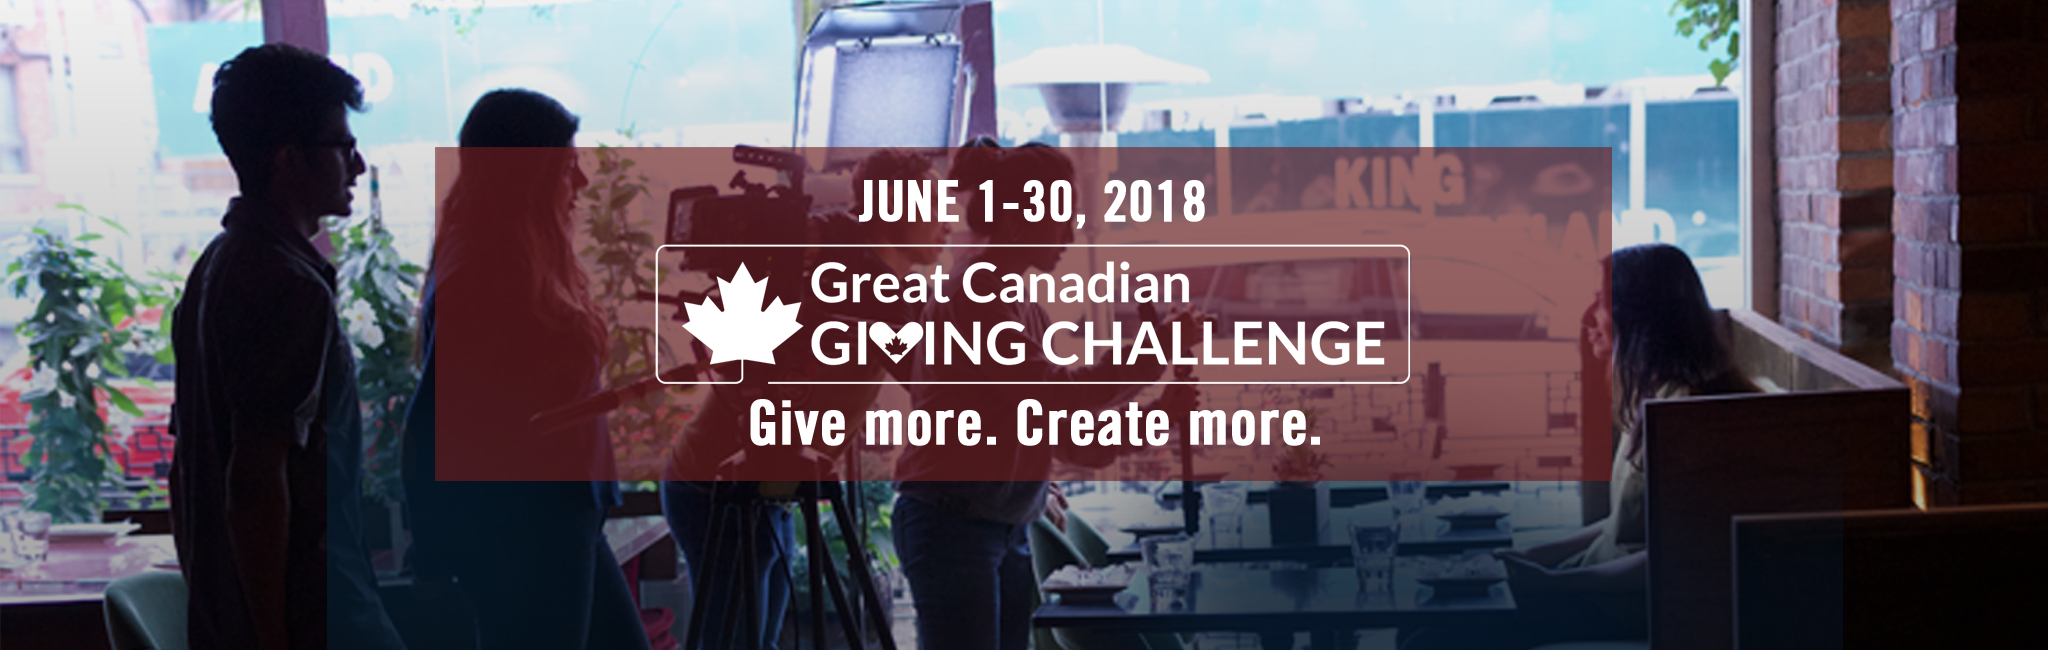 Great Canadian Giving Challenge 2018